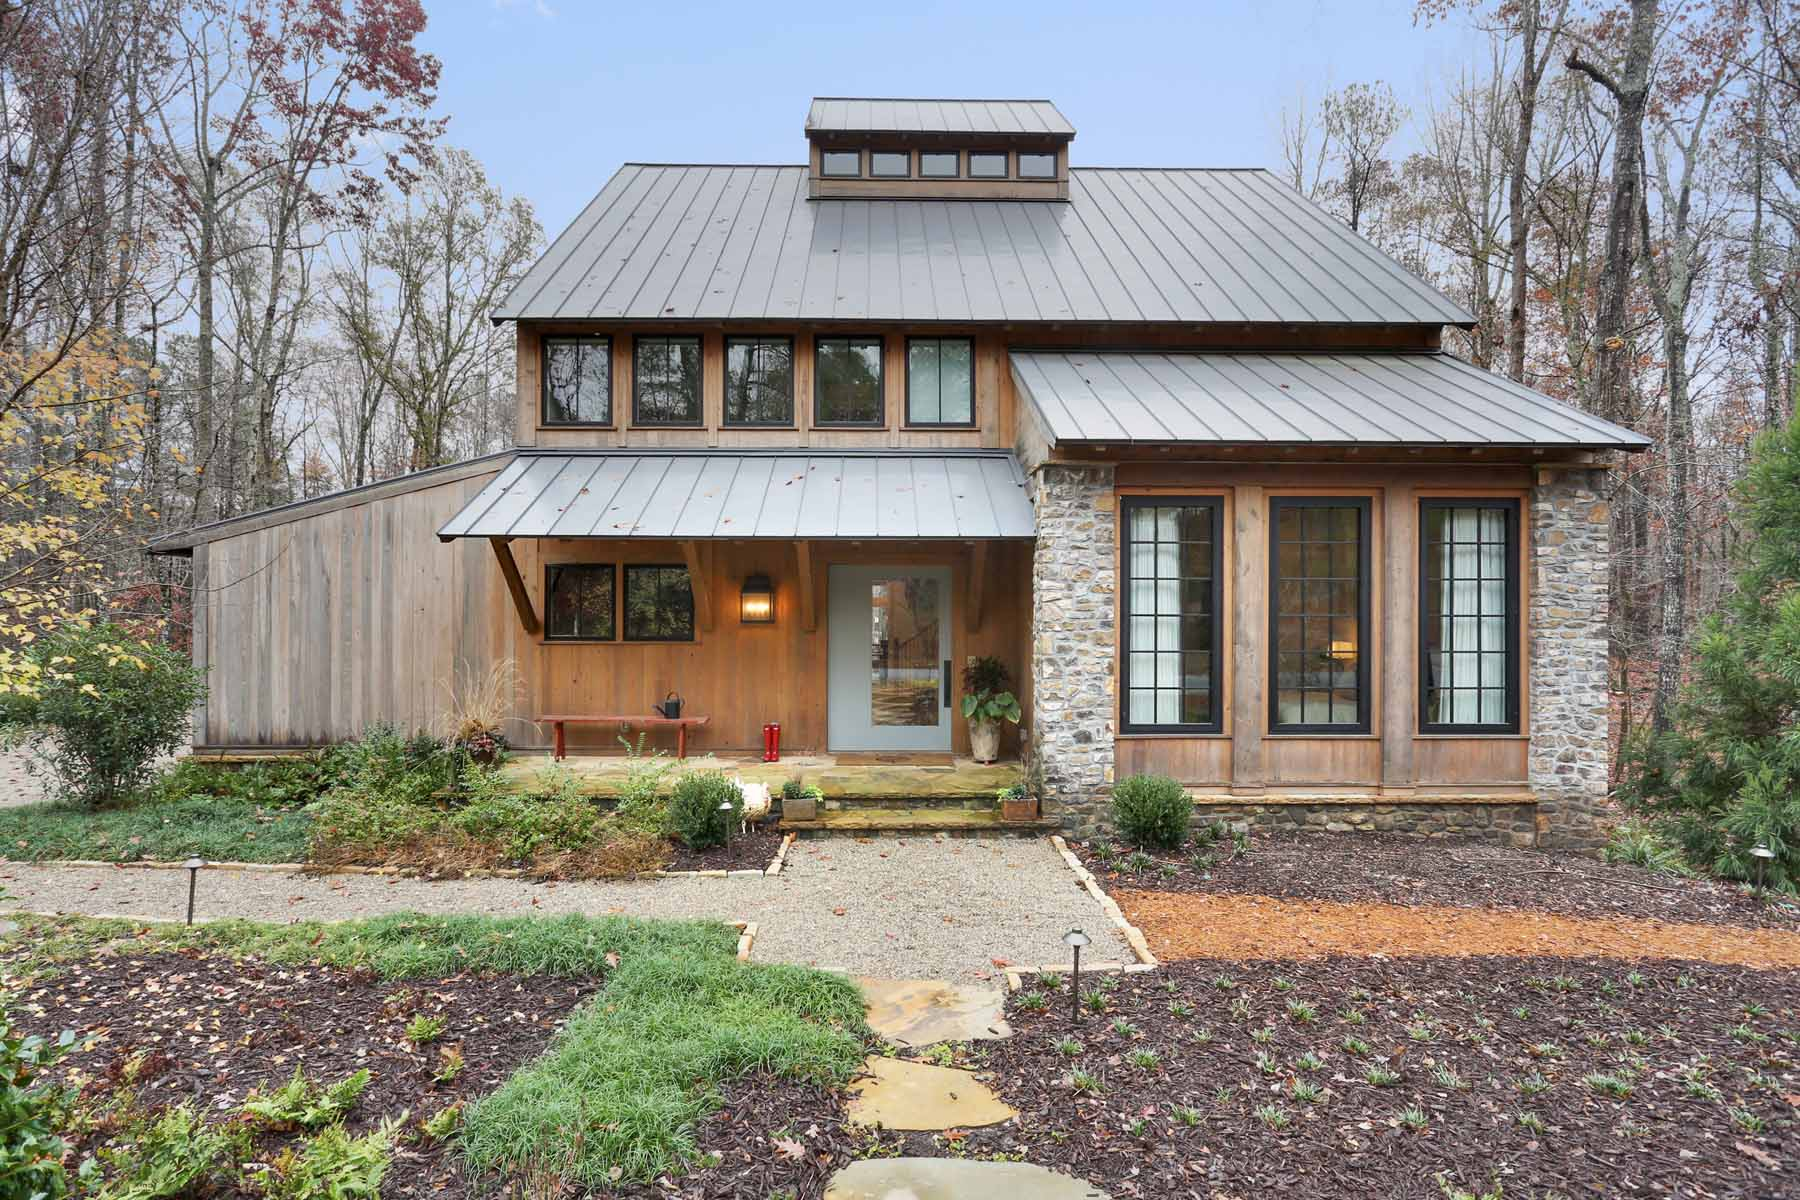 단독 가정 주택 용 매매 에 Serenbe Home Inspired by Sophisticated Farmhouse Look 9023 Selborne Lane Chattahoochee Hills, 조지아, 30268 미국